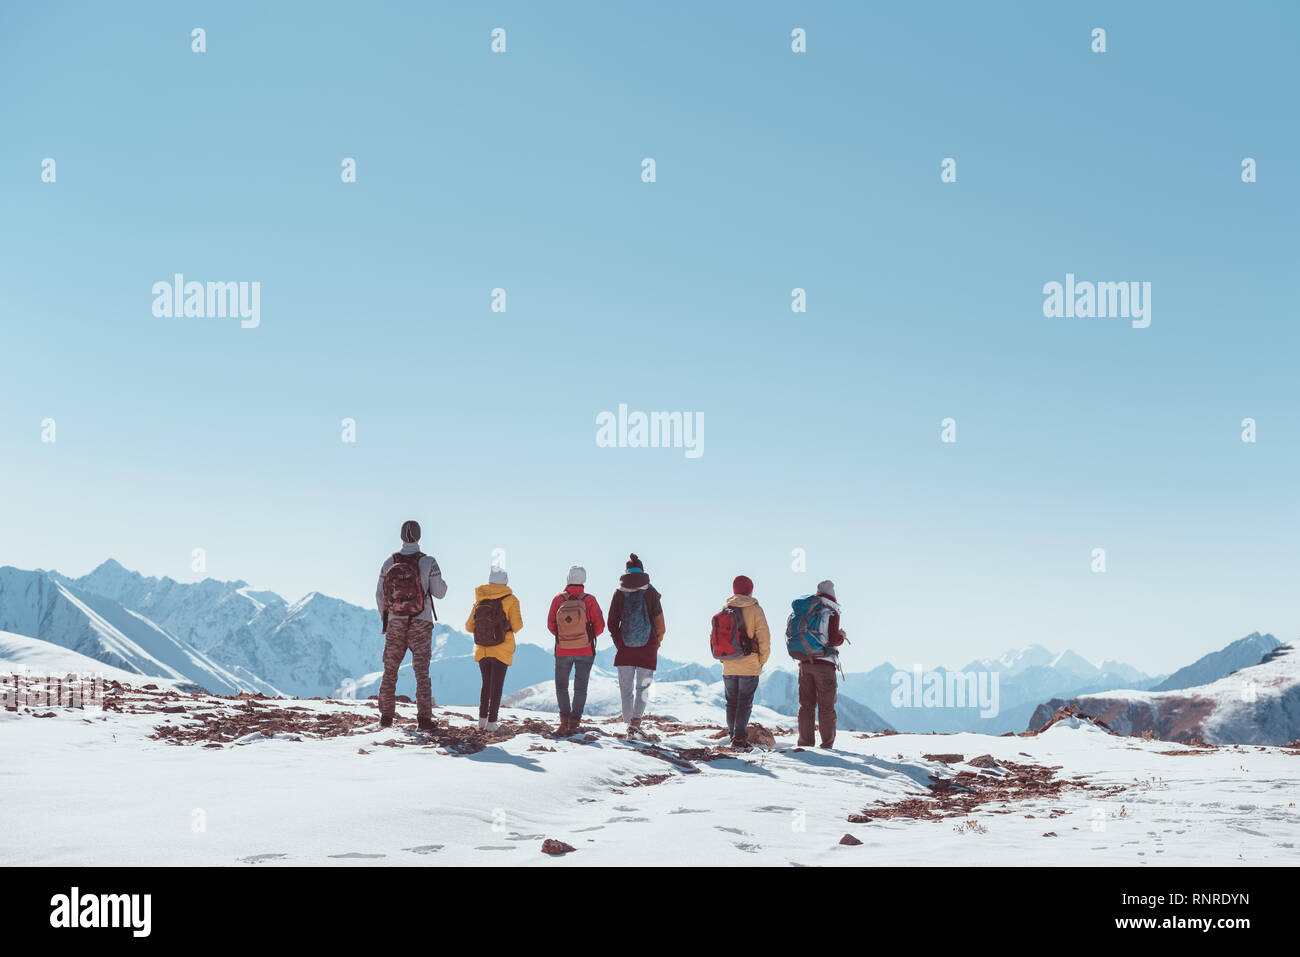 Big group of hikers or tourists or friends stands on mountain pass or top and looks at mountains. Space for text Stock Photo